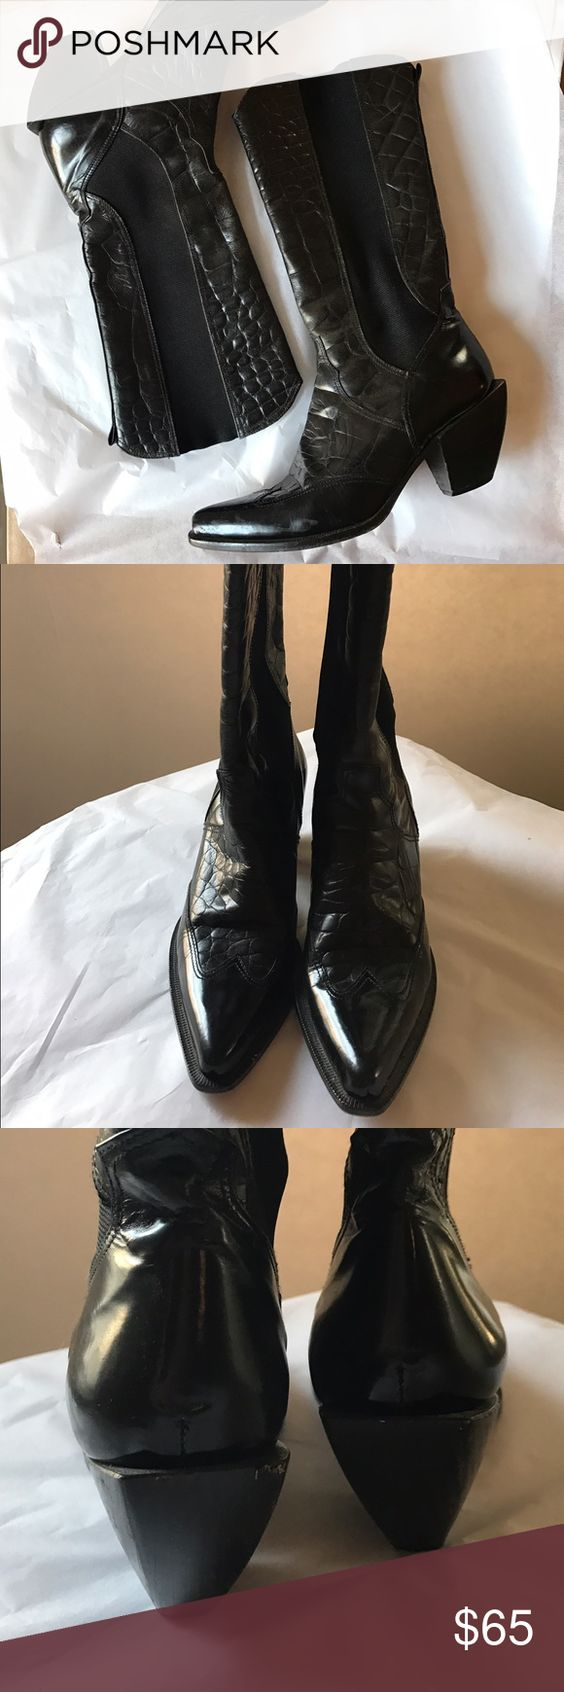 Donald Pliner Cowboy Boots Beautiful heeled cowboy boots in good pre-owned condition. Have a small nick in heel. Genuine leather, elastic sides, made in Italy. Size 6. Donald J. Pliner Shoes Heeled Boots